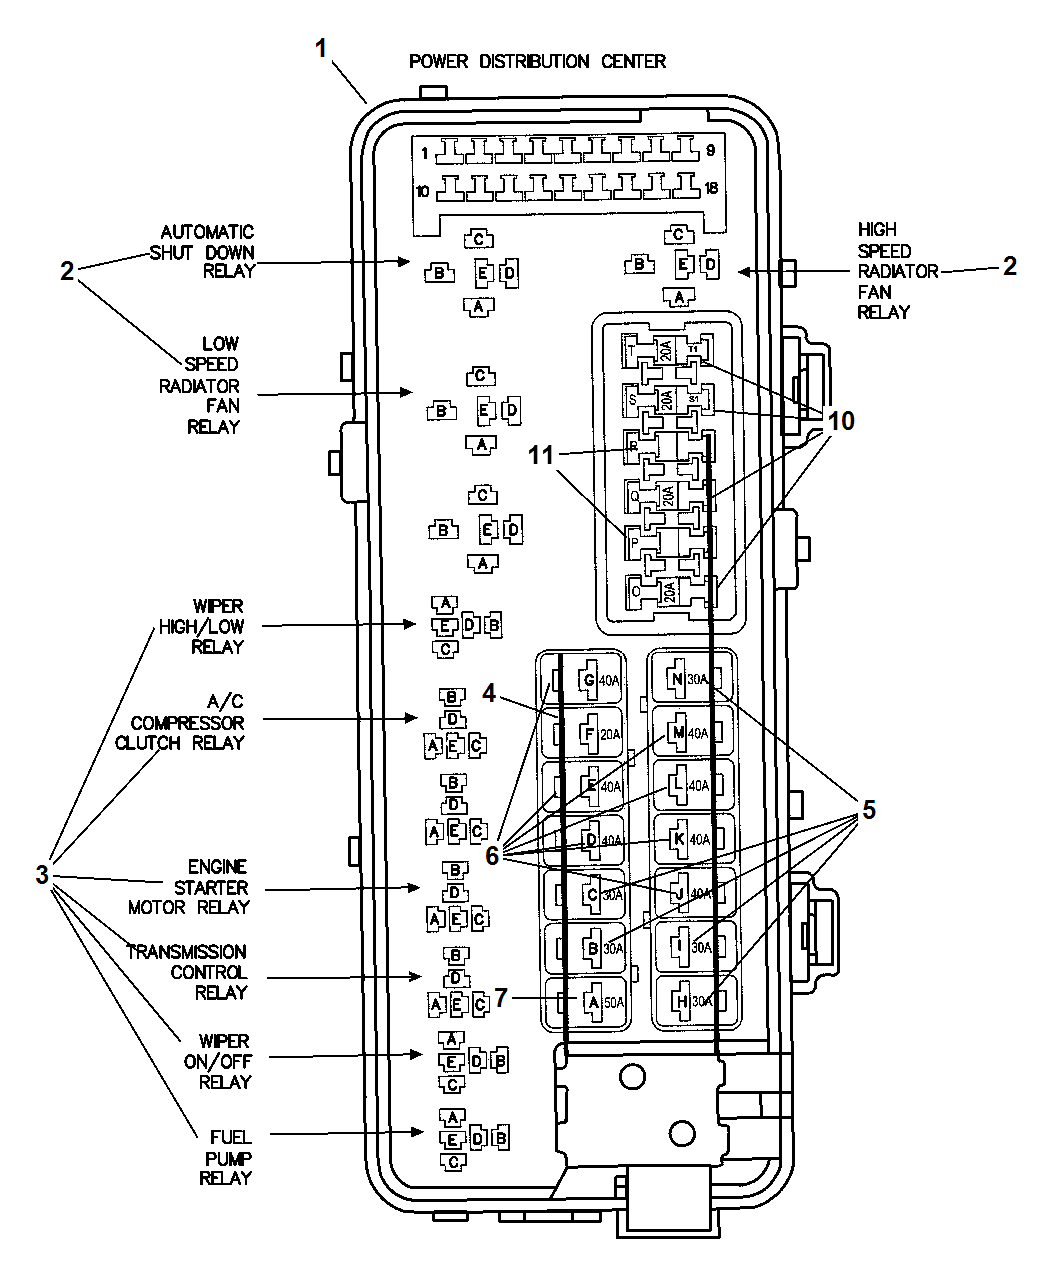 [FPWZ_2684]  ET_3678] Dodge Intrepid Fuse Diagram Wiring Diagram | 96 Dodge Intrepid Fuse Diagram |  | Wned Ponge Romet Dness Xortanet Emba Mohammedshrine Librar Wiring 101